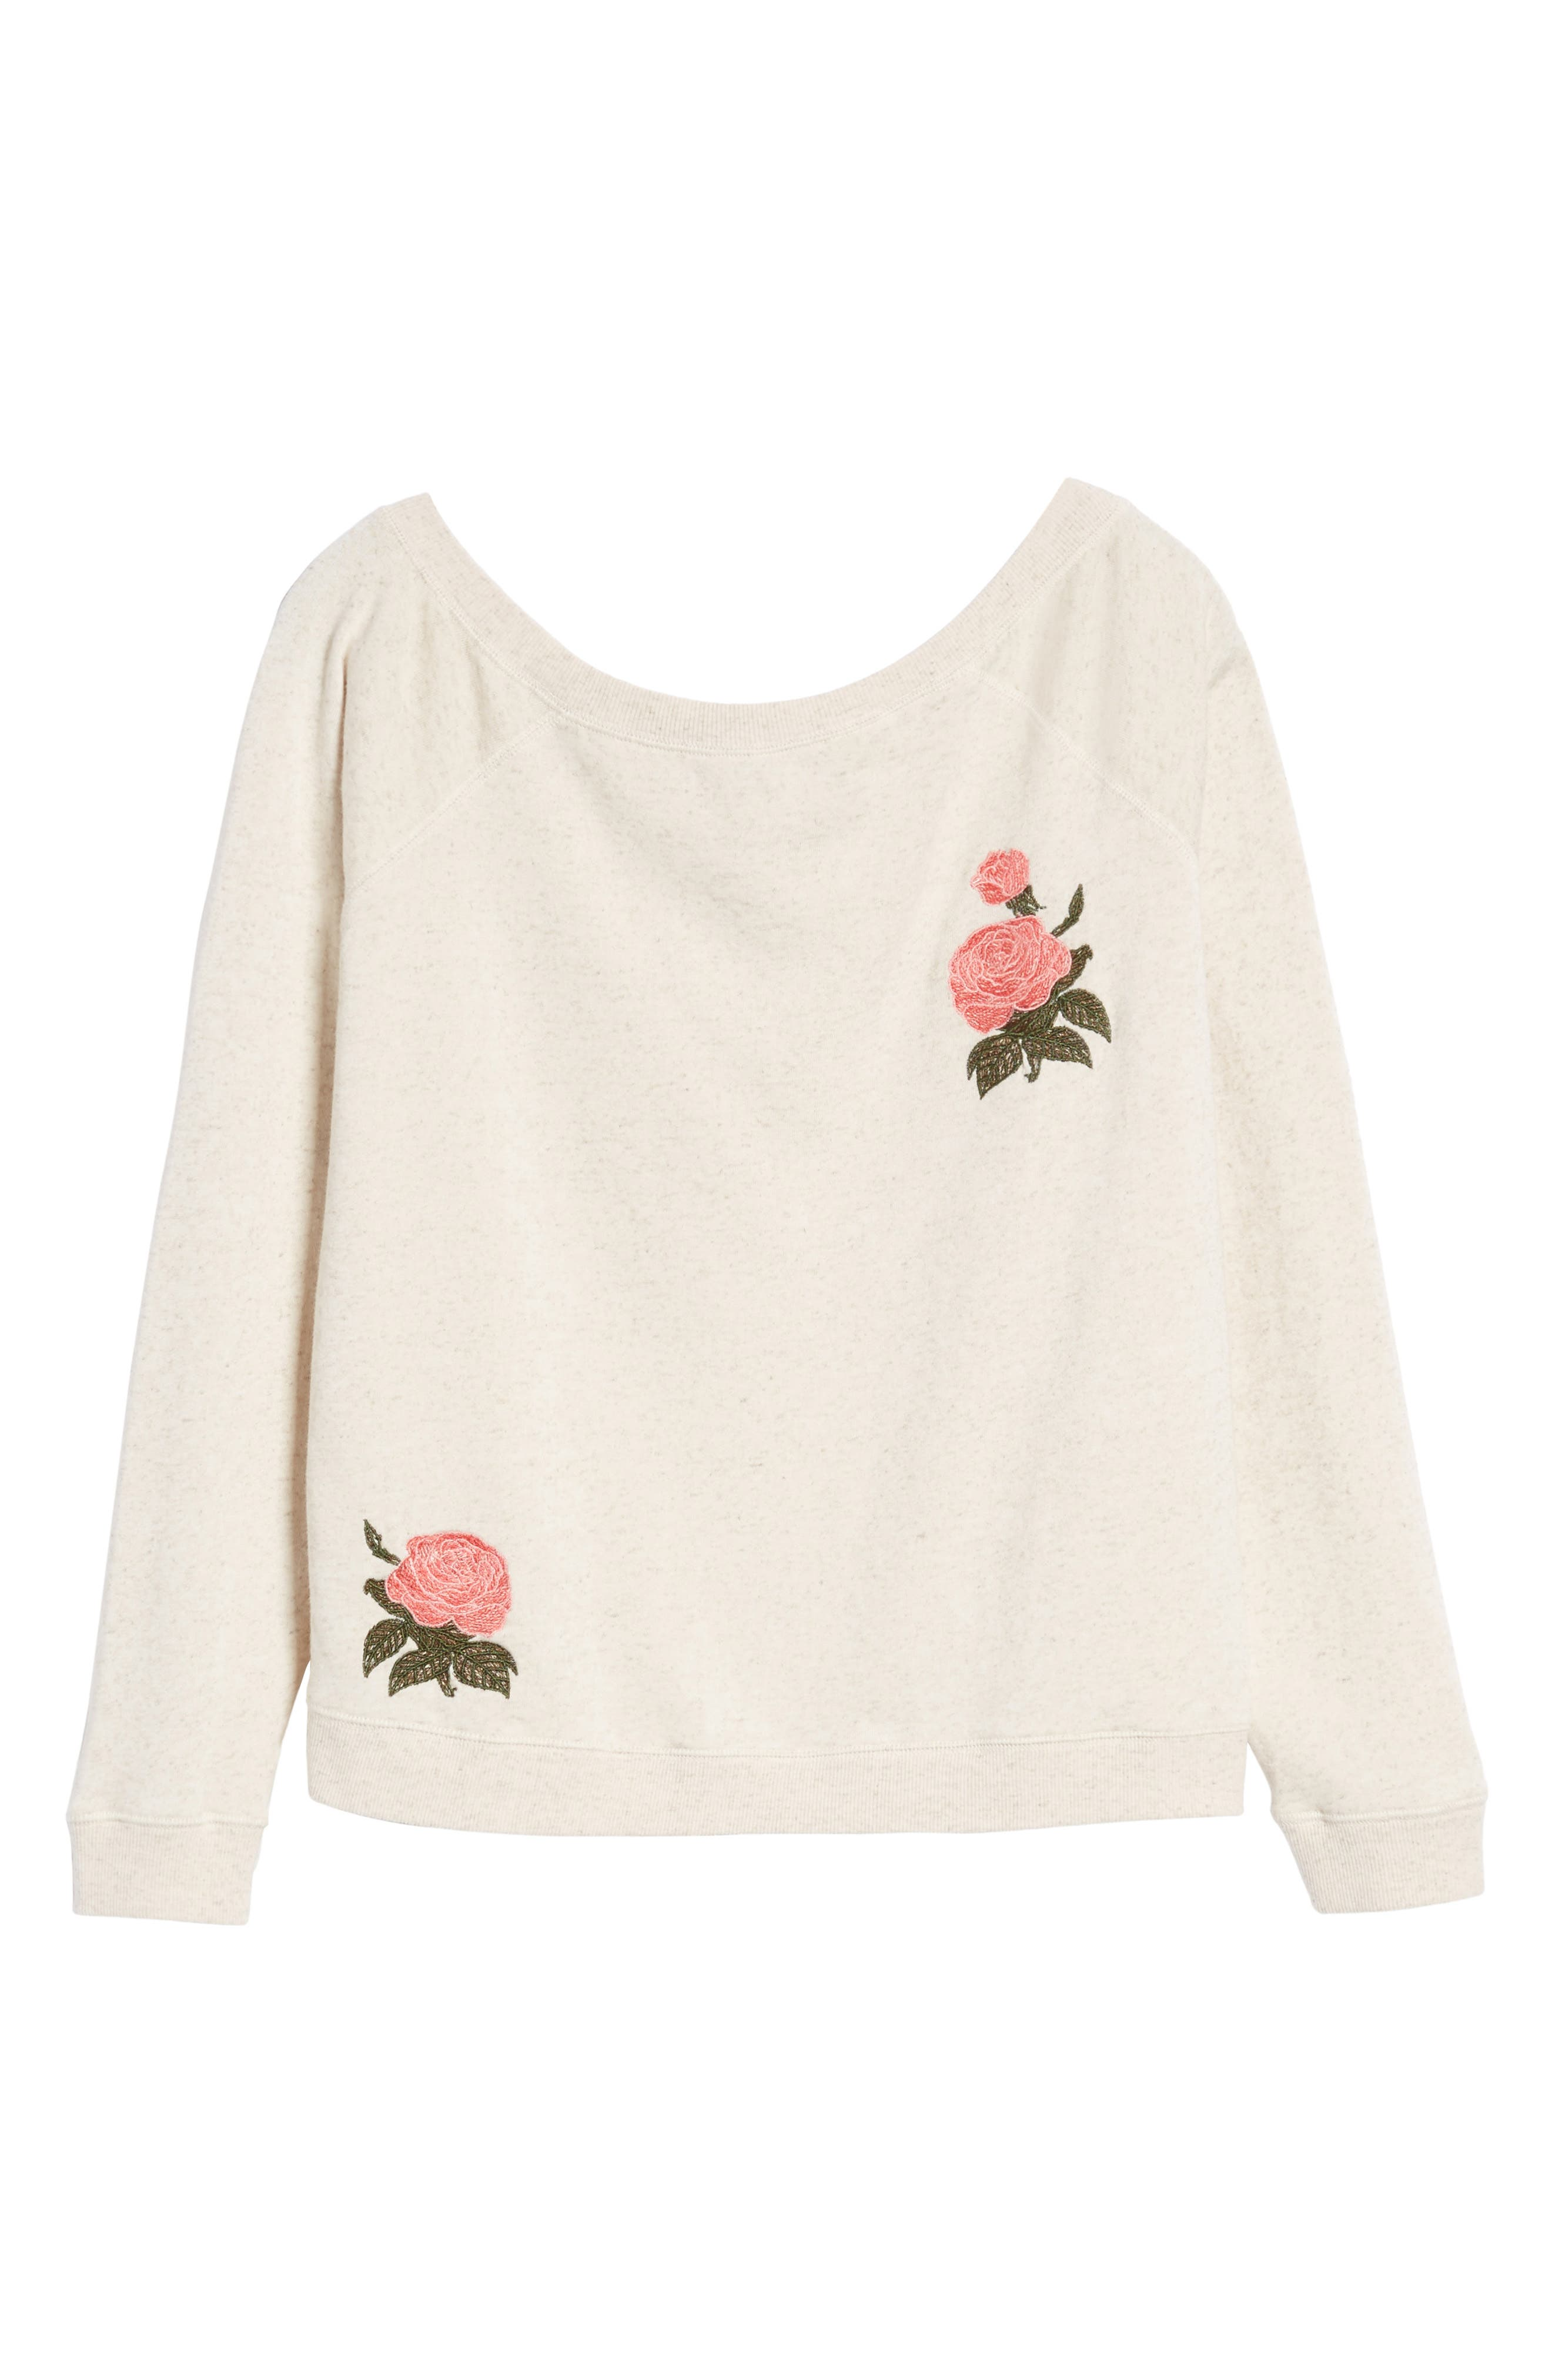 Embroidered Rose Sweatshirt,                             Alternate thumbnail 6, color,                             901